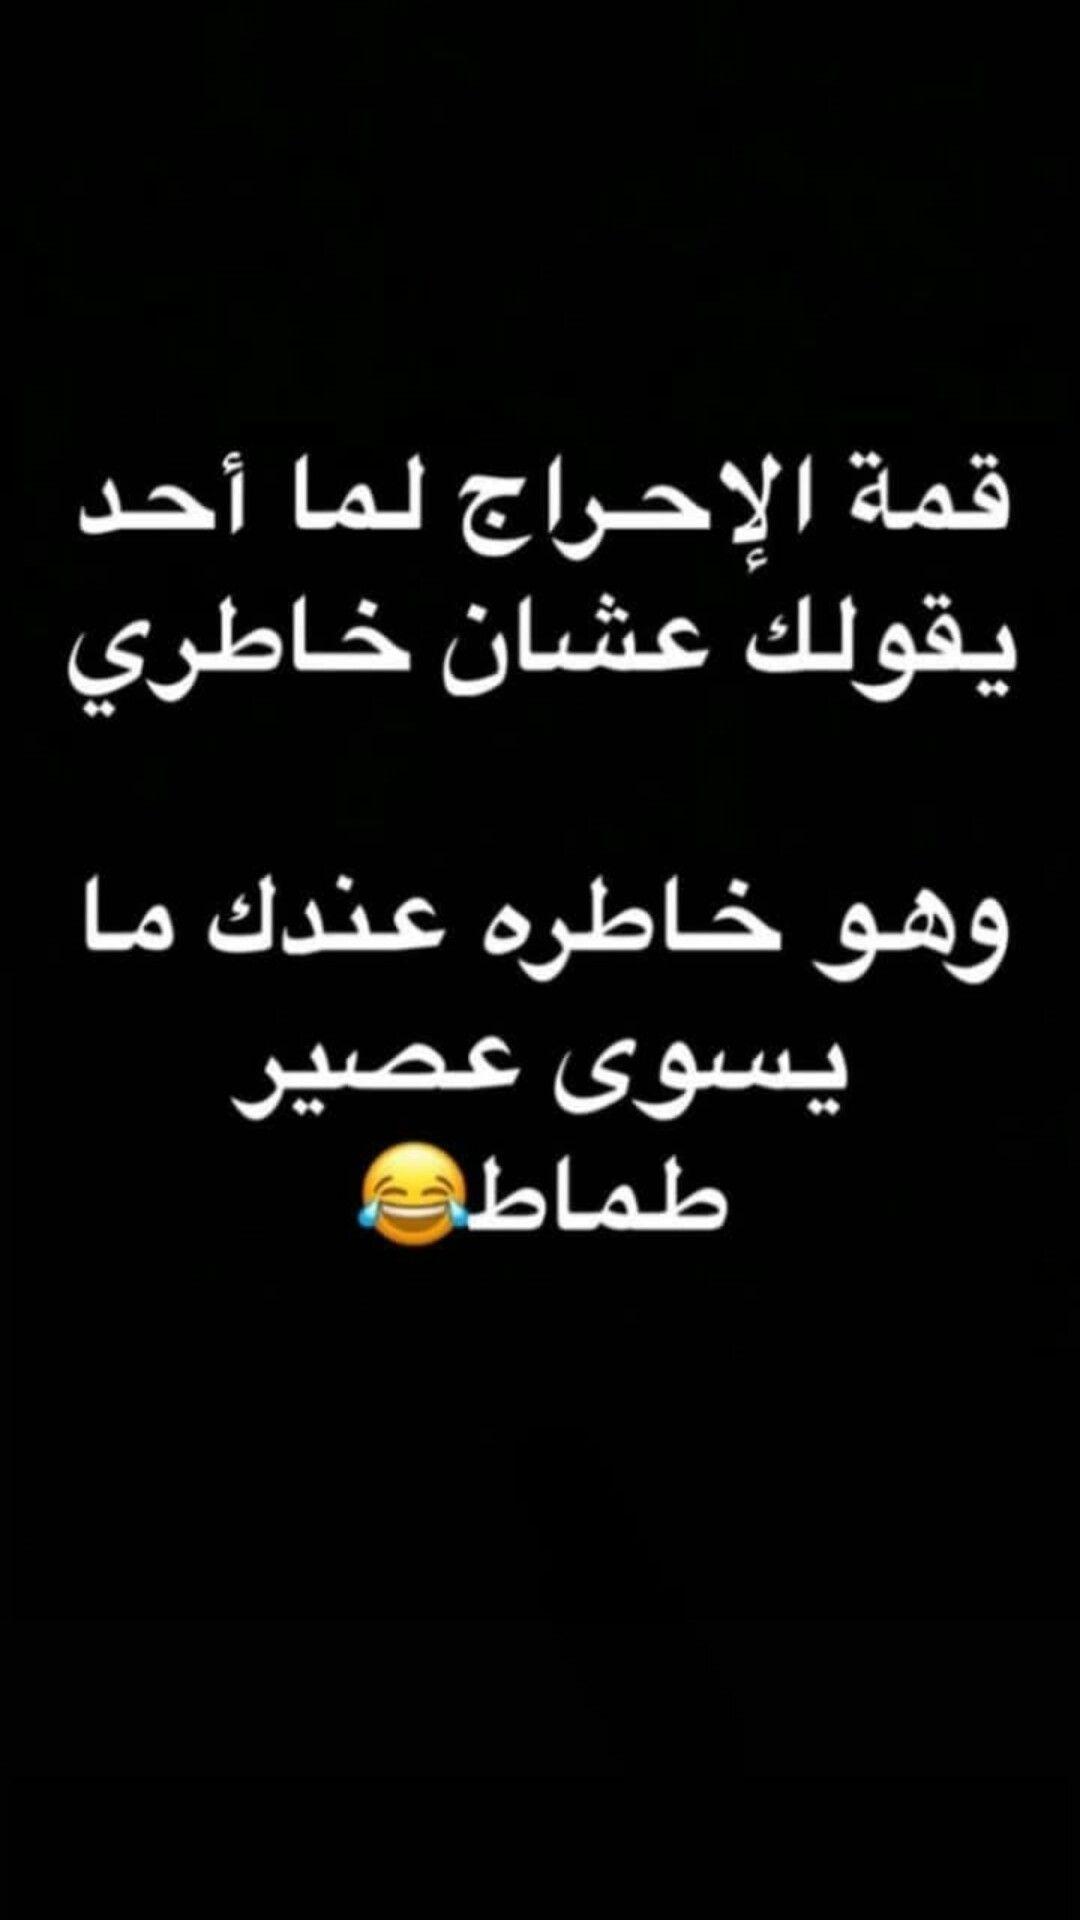 Pin By Alhlfawy On Sarty Funny Arabic Quotes Funny Relatable Quotes Laughing Quotes